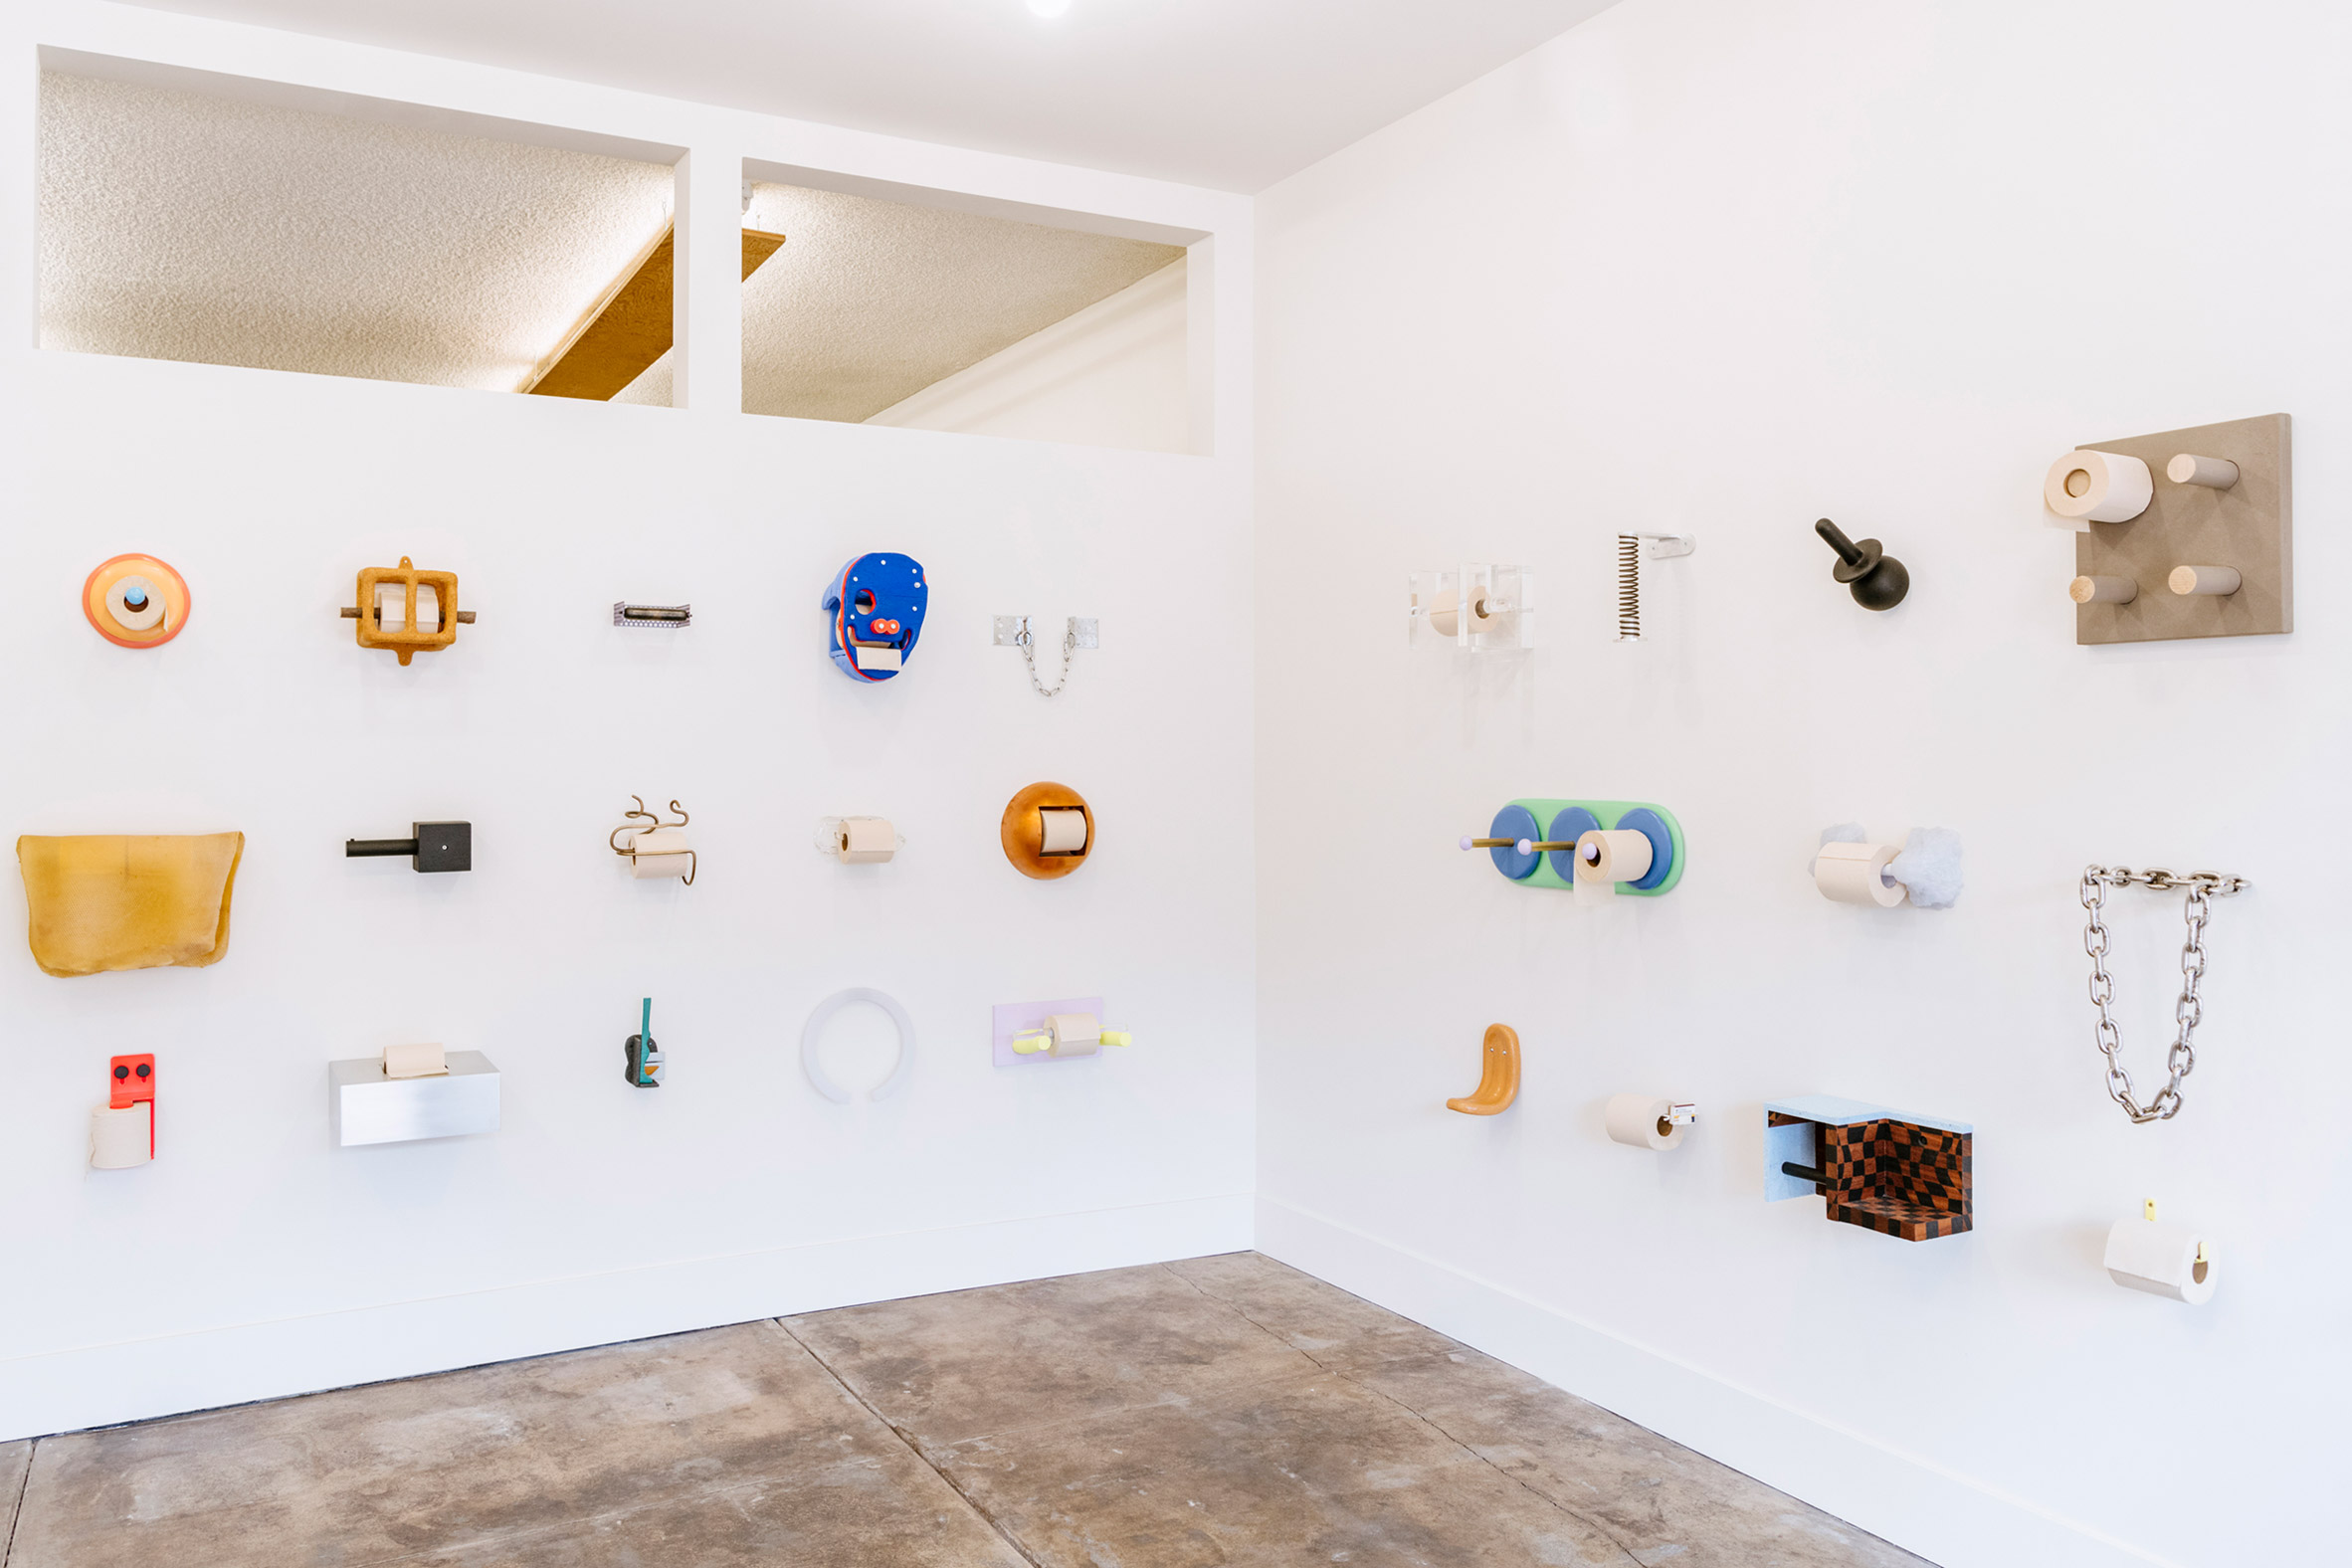 Toilet roll holders at Marta gallery